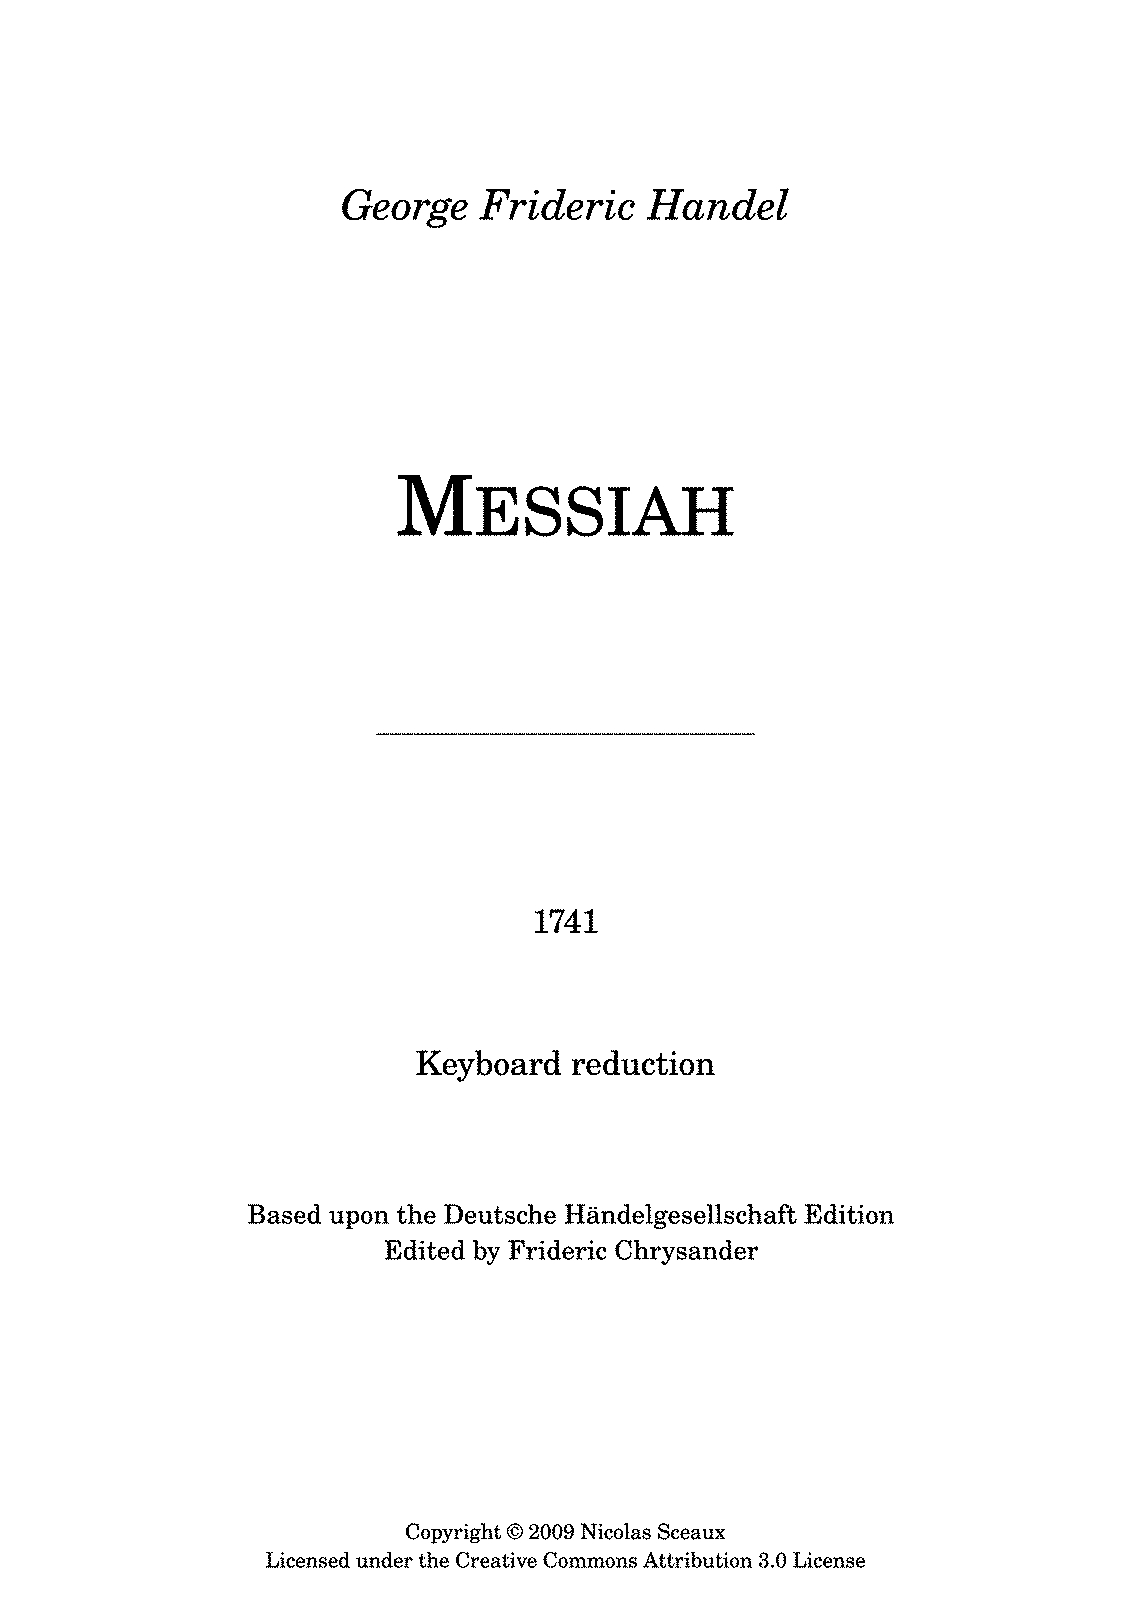 PMLP22568-Messiah-keyboard.pdf